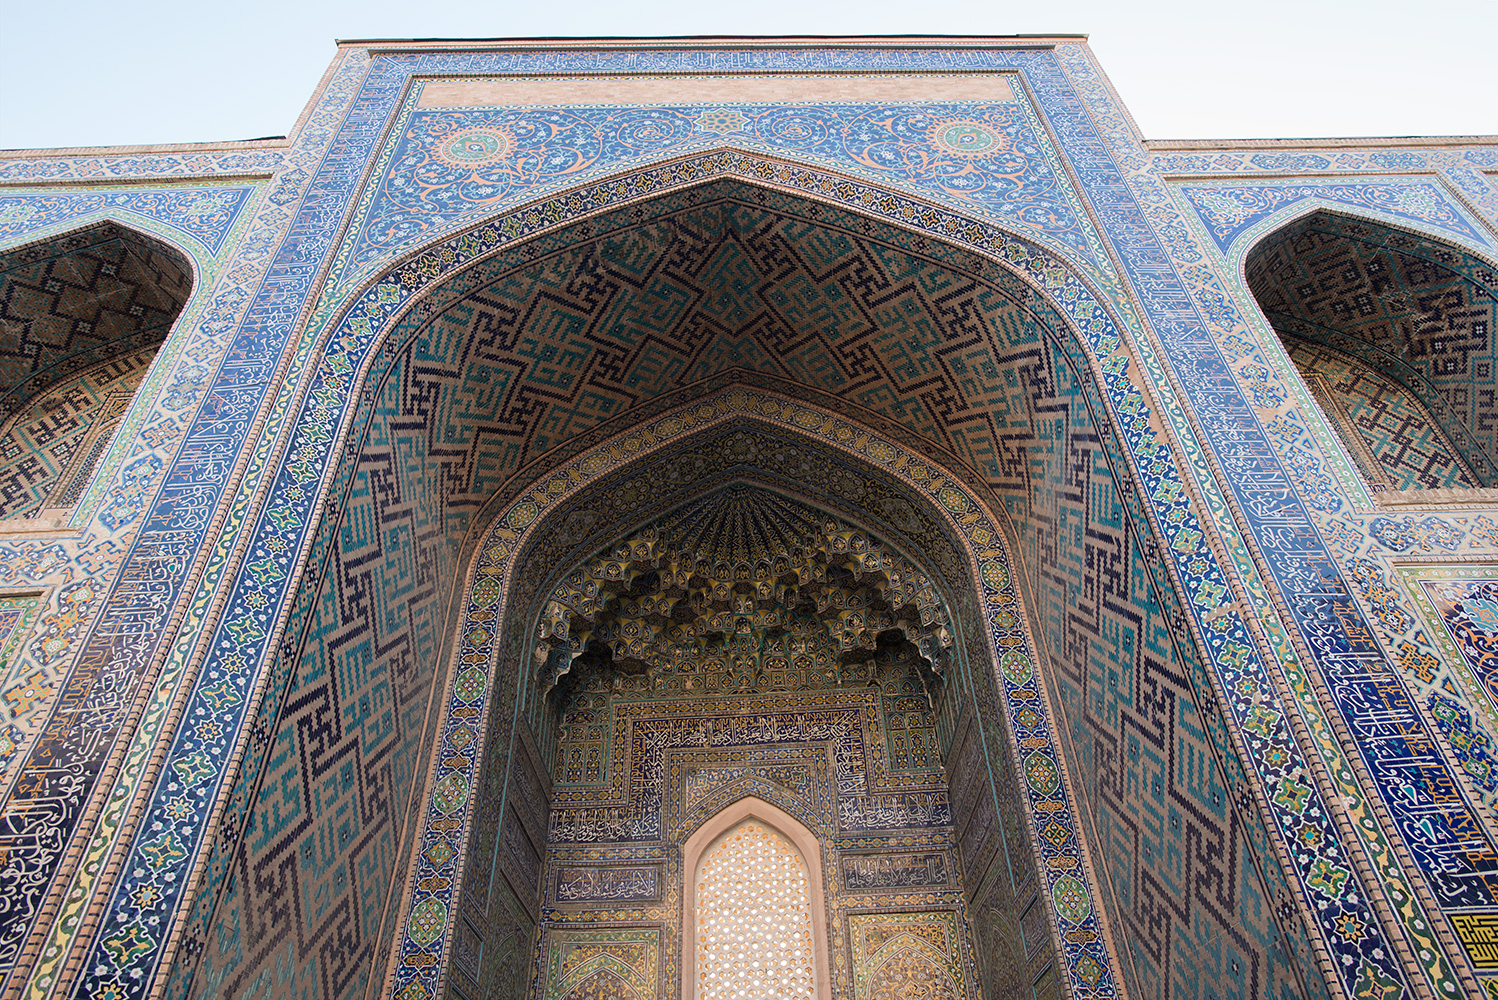 Built by Governor Yalangtush and completed in 1660, the central madrassah in the Registan square is the largest. This is the portal on the east side, flanked by two stories of hujra (rooms used for prayer / study)